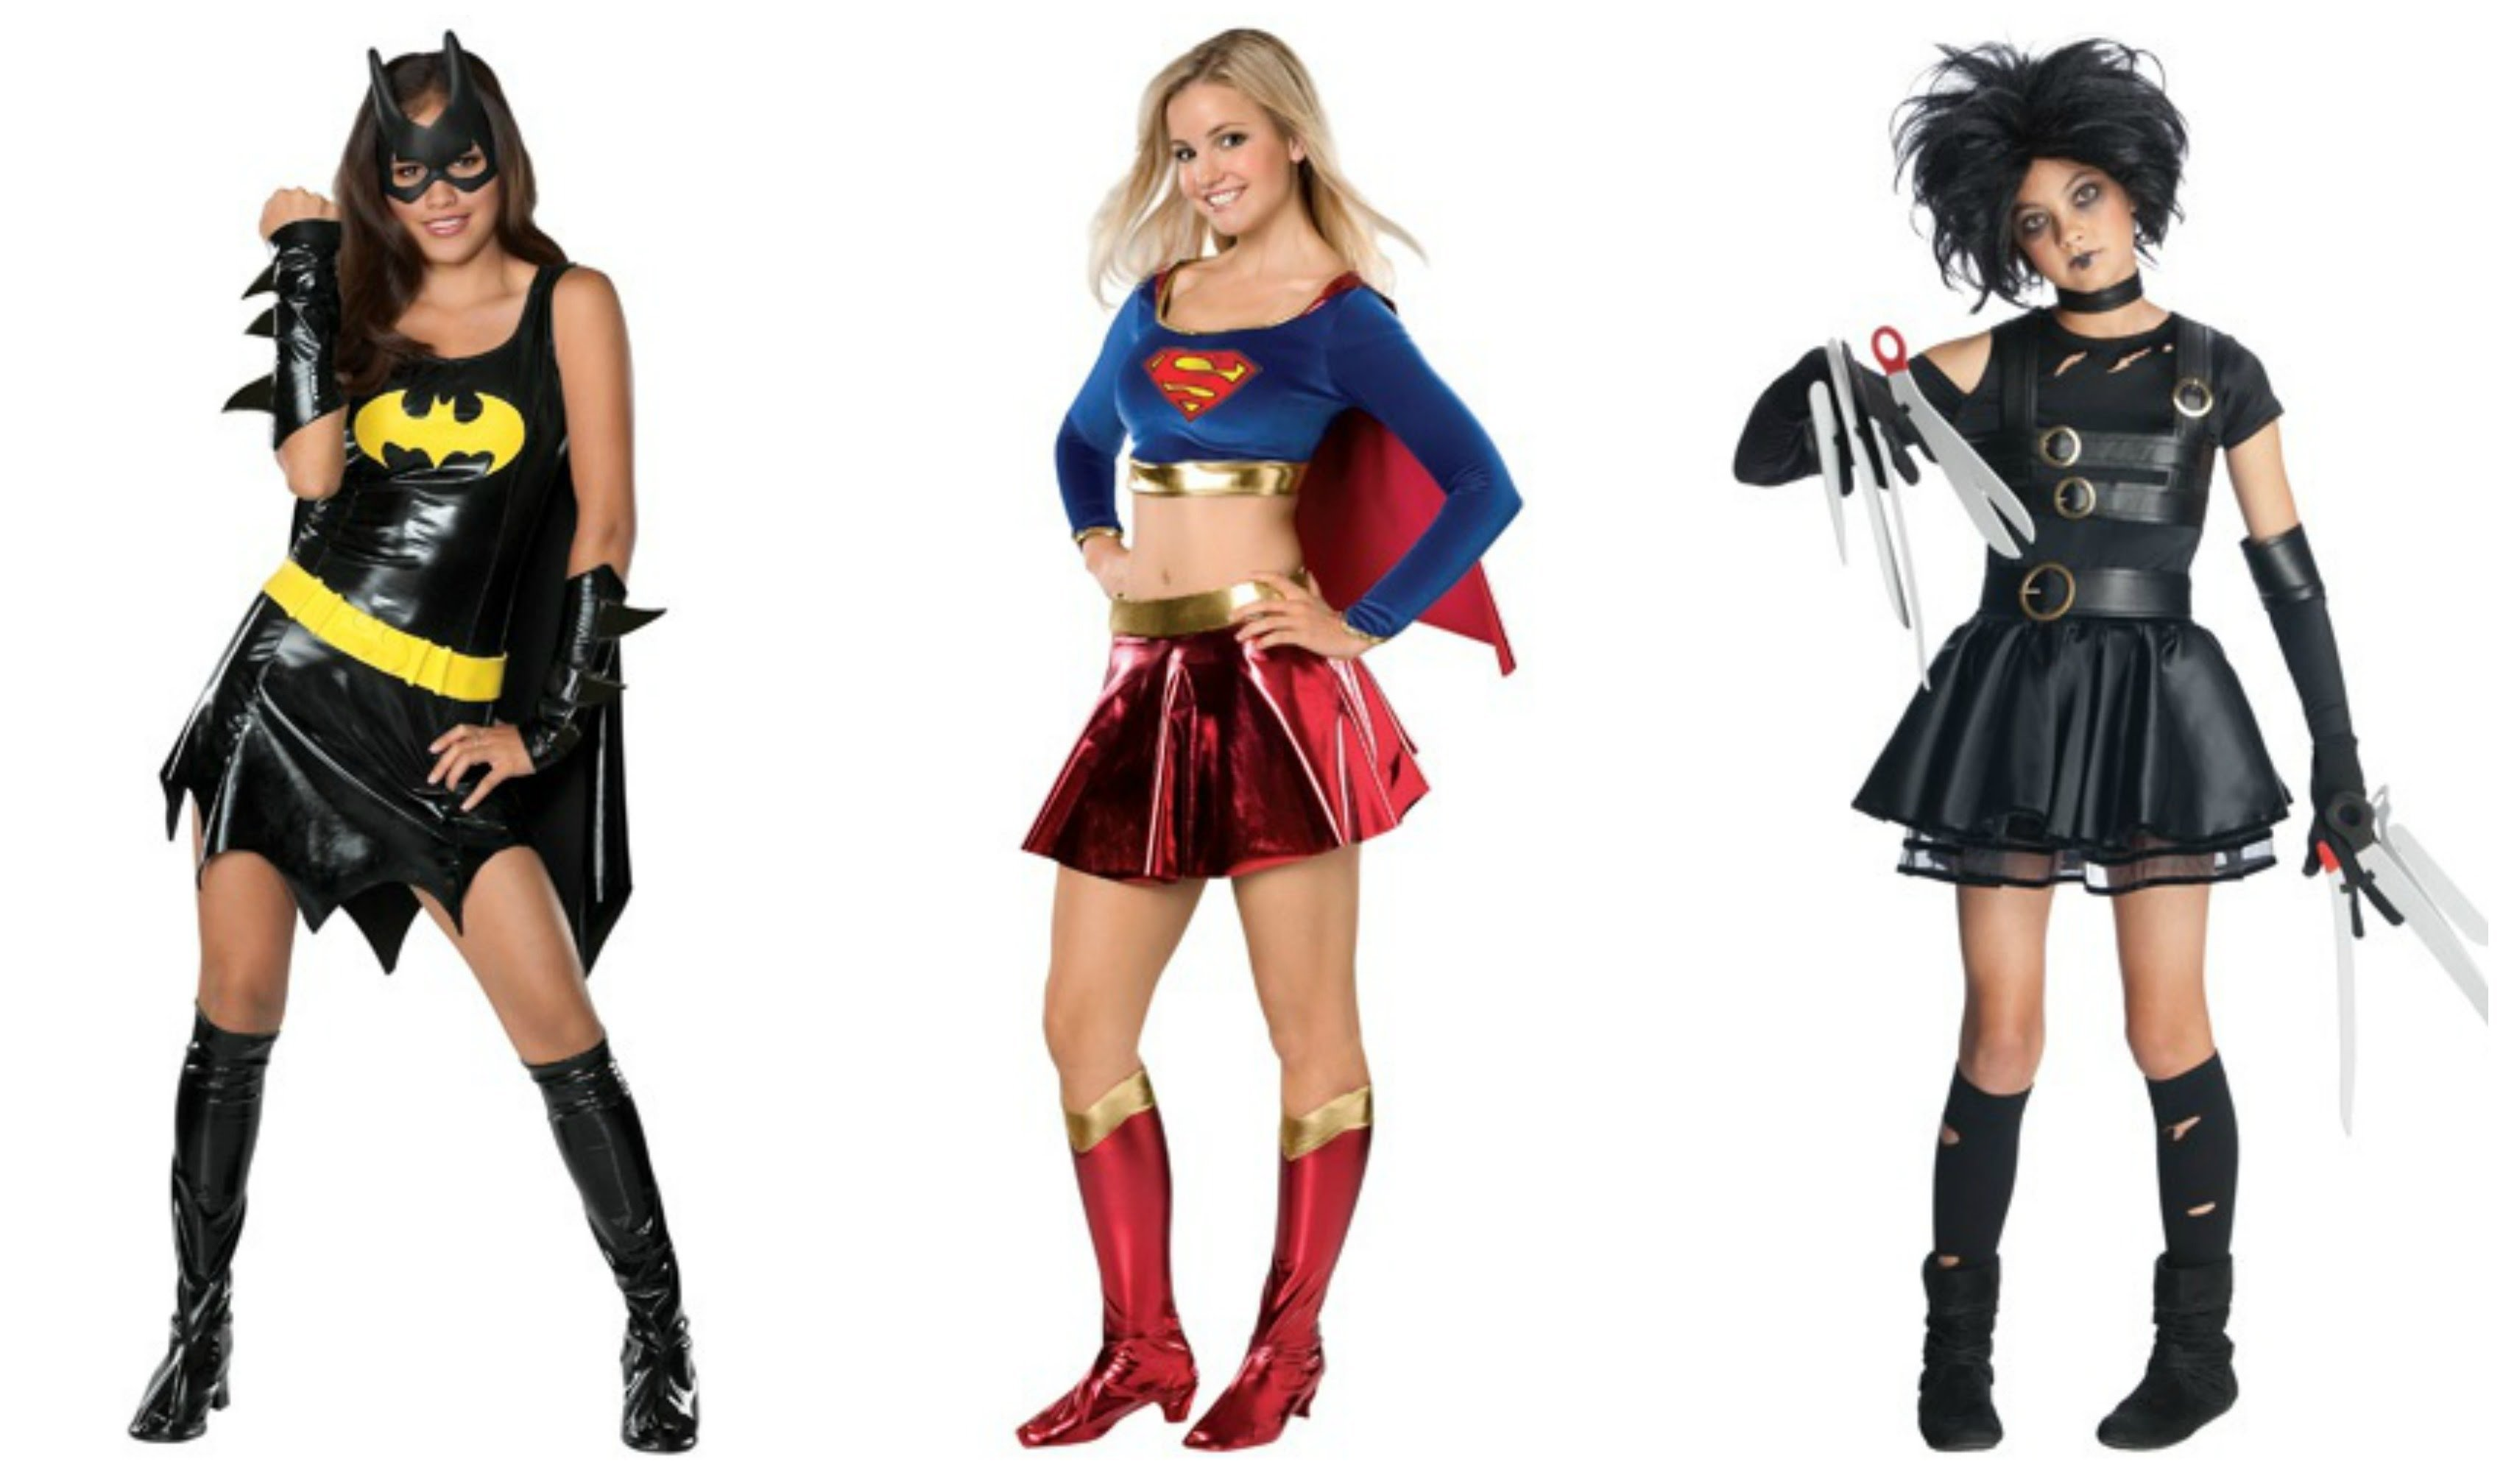 10 Awesome Good Costume Ideas For Teenage Girls halloween costume ideas for teens girls youtube halloween costumes 12 2020